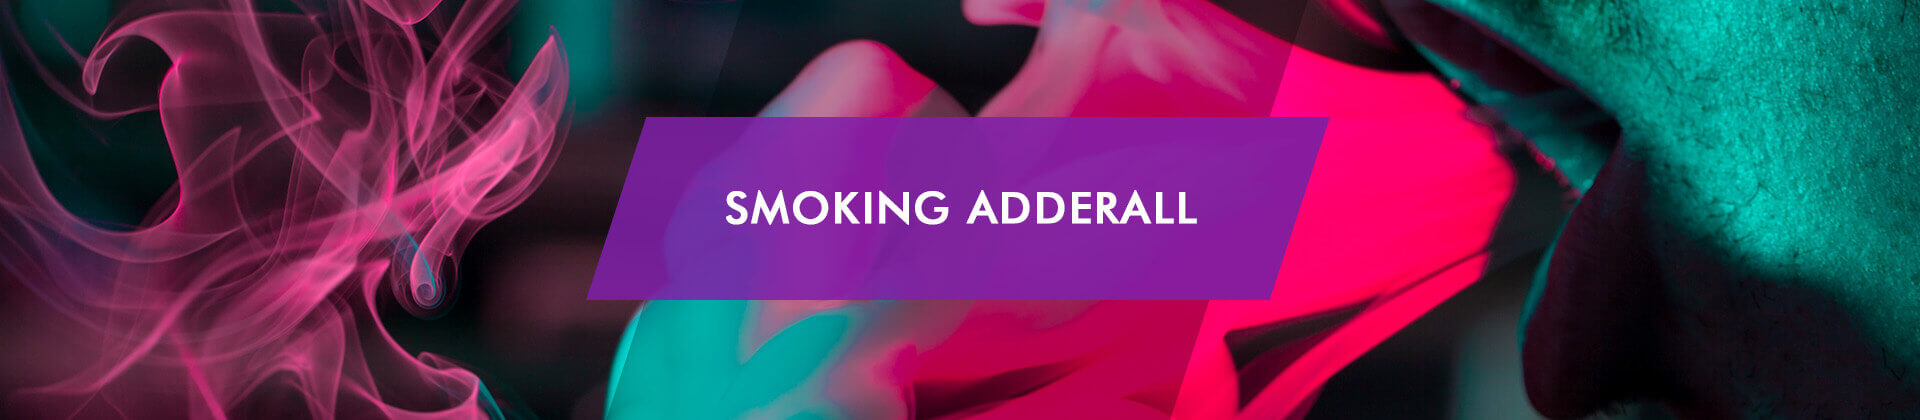 How to Smoke Adderall: Dangers and Side Effects of Puffing Amphetamine